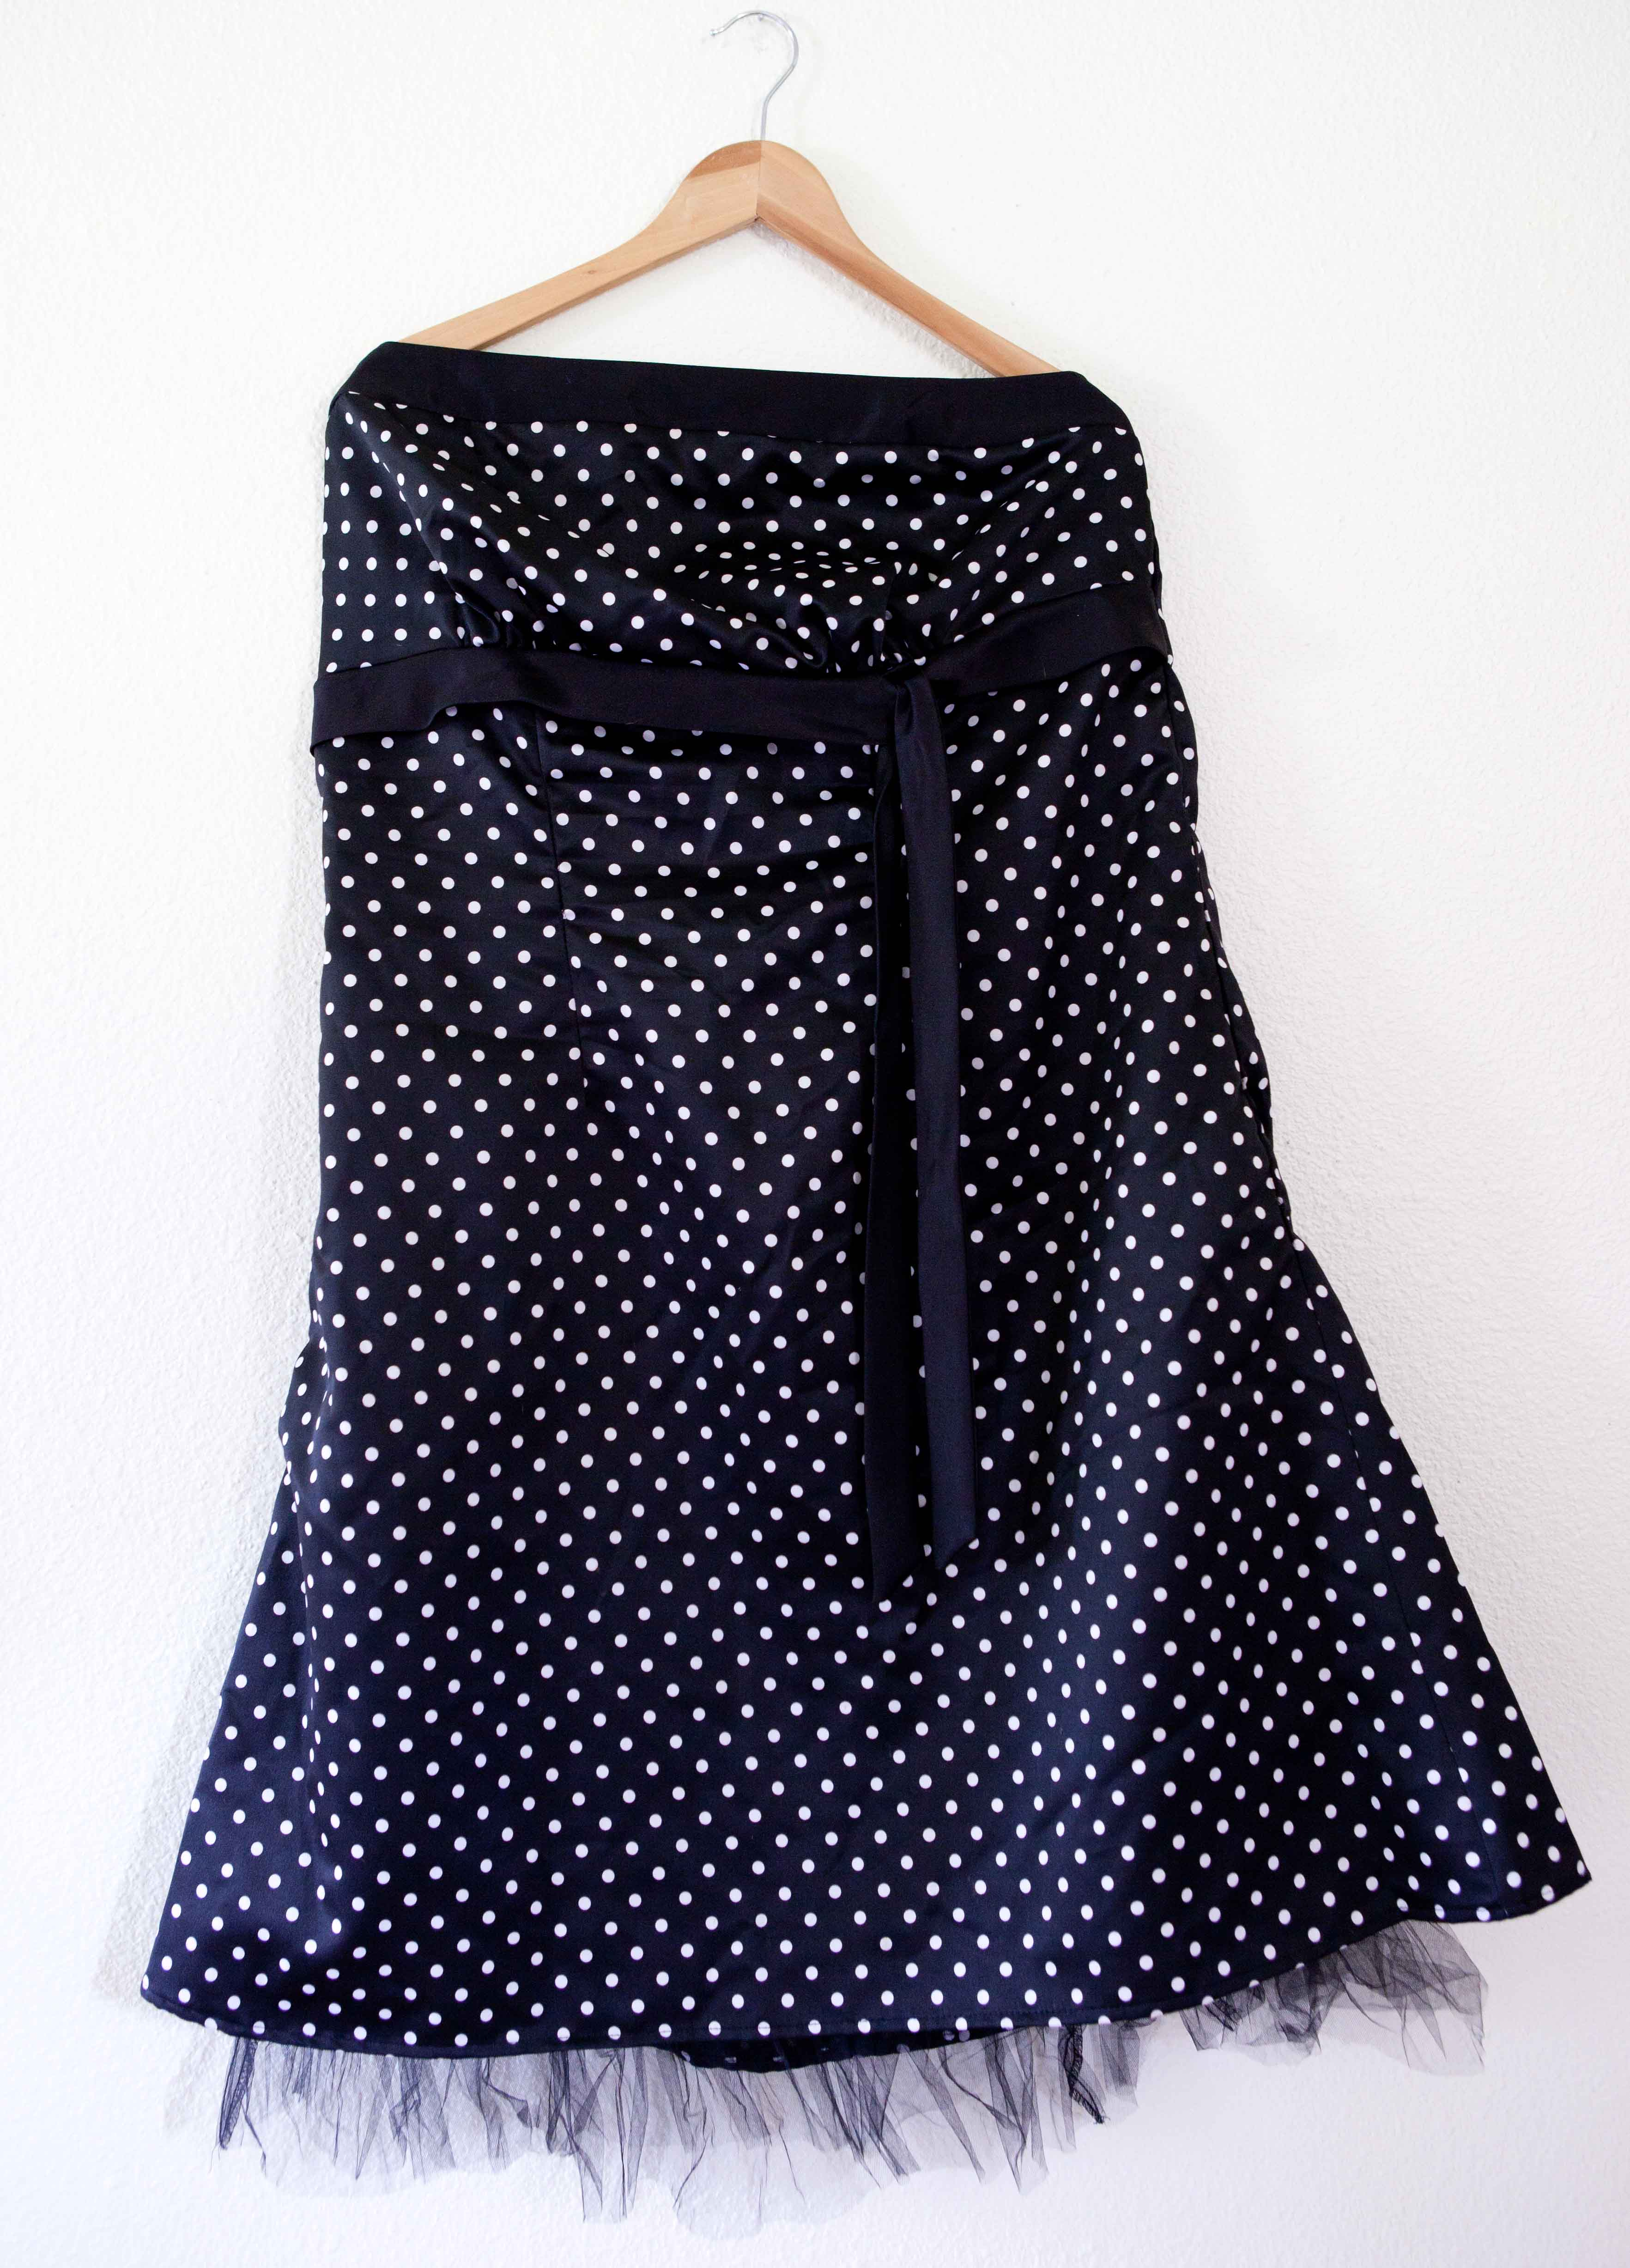 6a2d938c5 Torrid Black and white polka dot strapless dress with tie and tulle size 18  2x on Storenvy